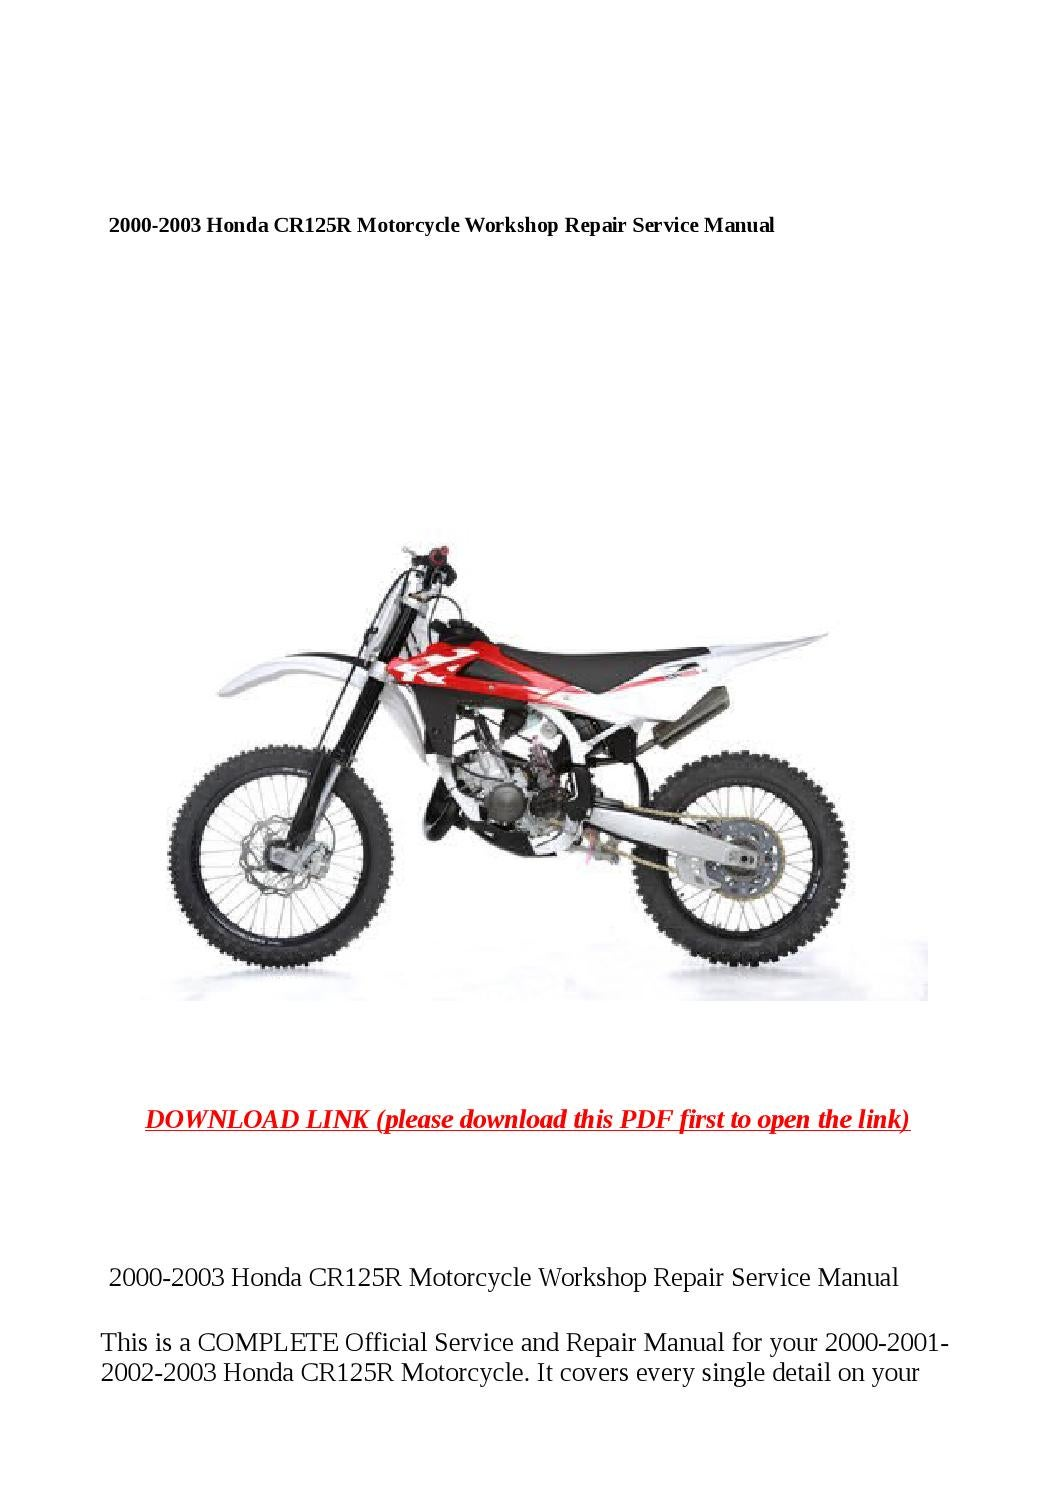 ... repair manual Array - cr125r manual rh parallel welten info 2000 2003  honda cr125r motorcycle ...